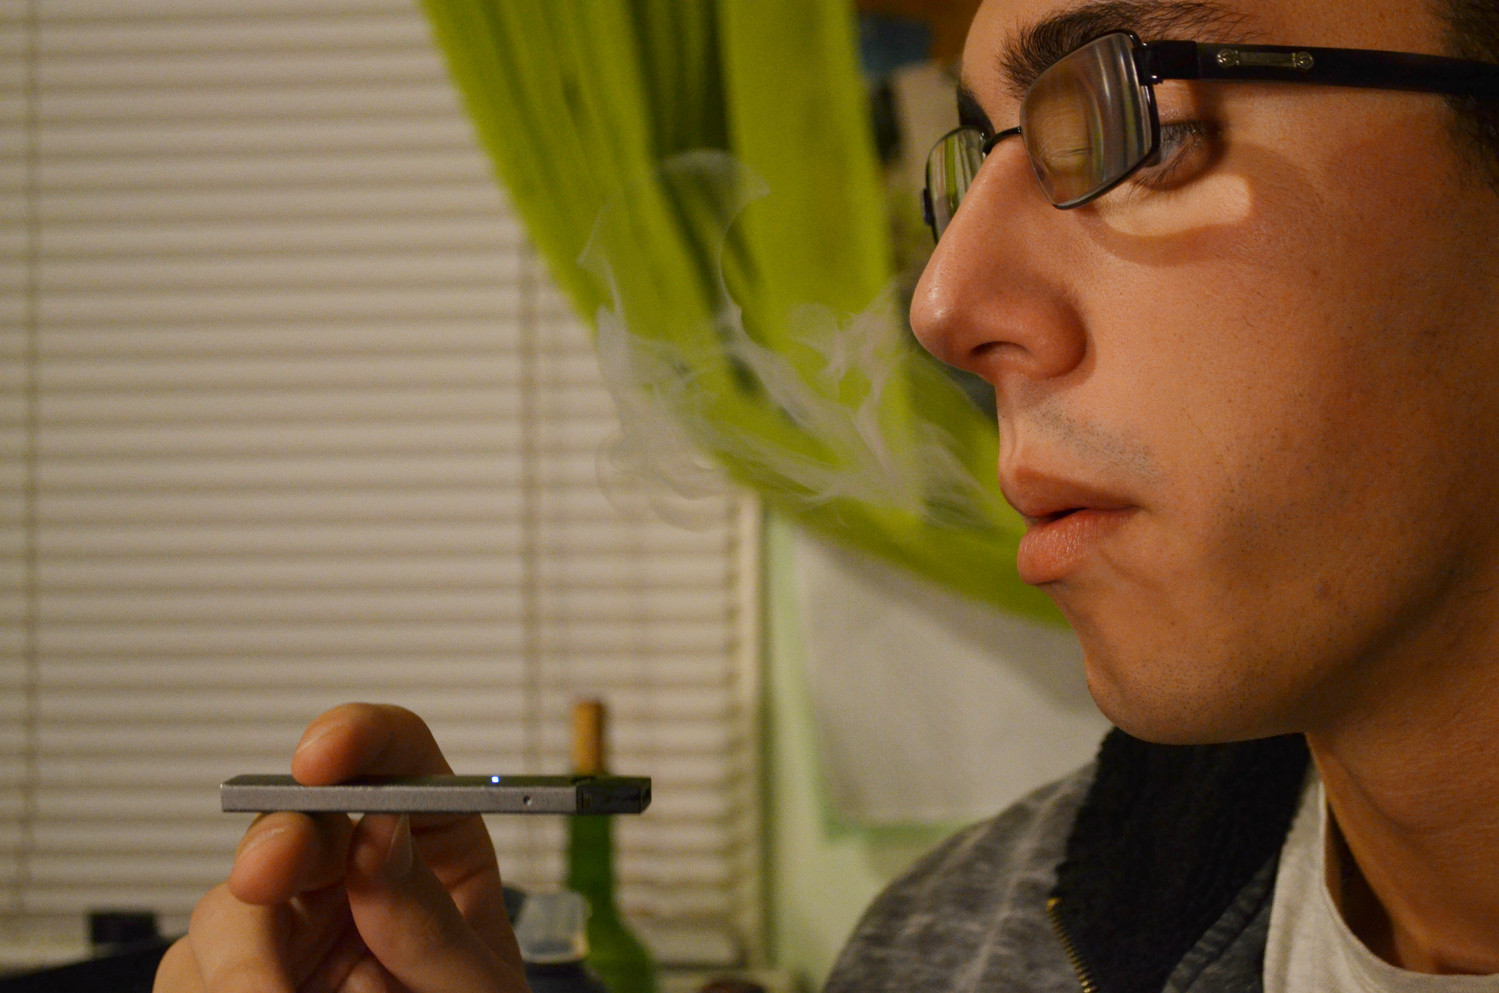 Tyler Calabrese, 20, of Merrick, used an e-cigarette. Although the legal age to buy tobacco and liquid nicotine products differs across Nassau County, the Town of Hempstead raised the legal age from 18 to 21 earlier this year. The City of Long Beach aims to follow in its footsteps.